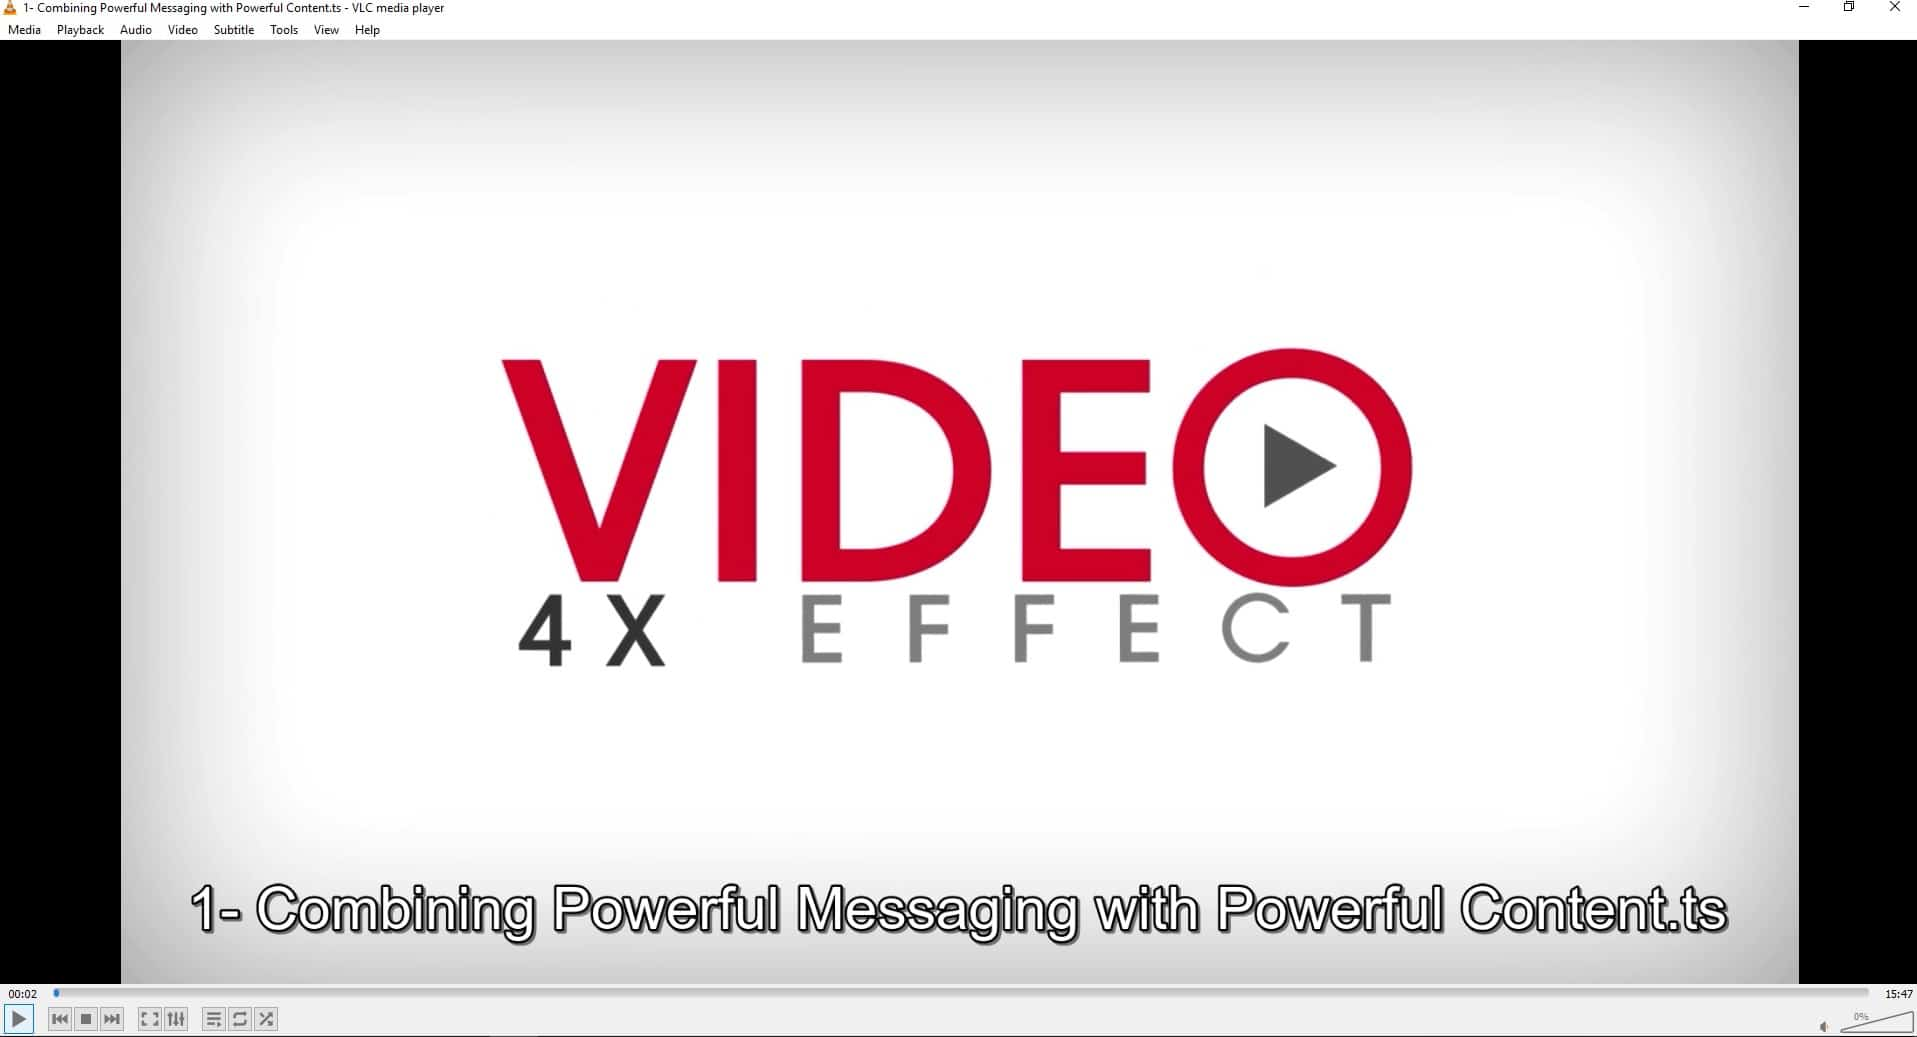 The Video 4x Effect 2020 by Brandon Lucero Offer